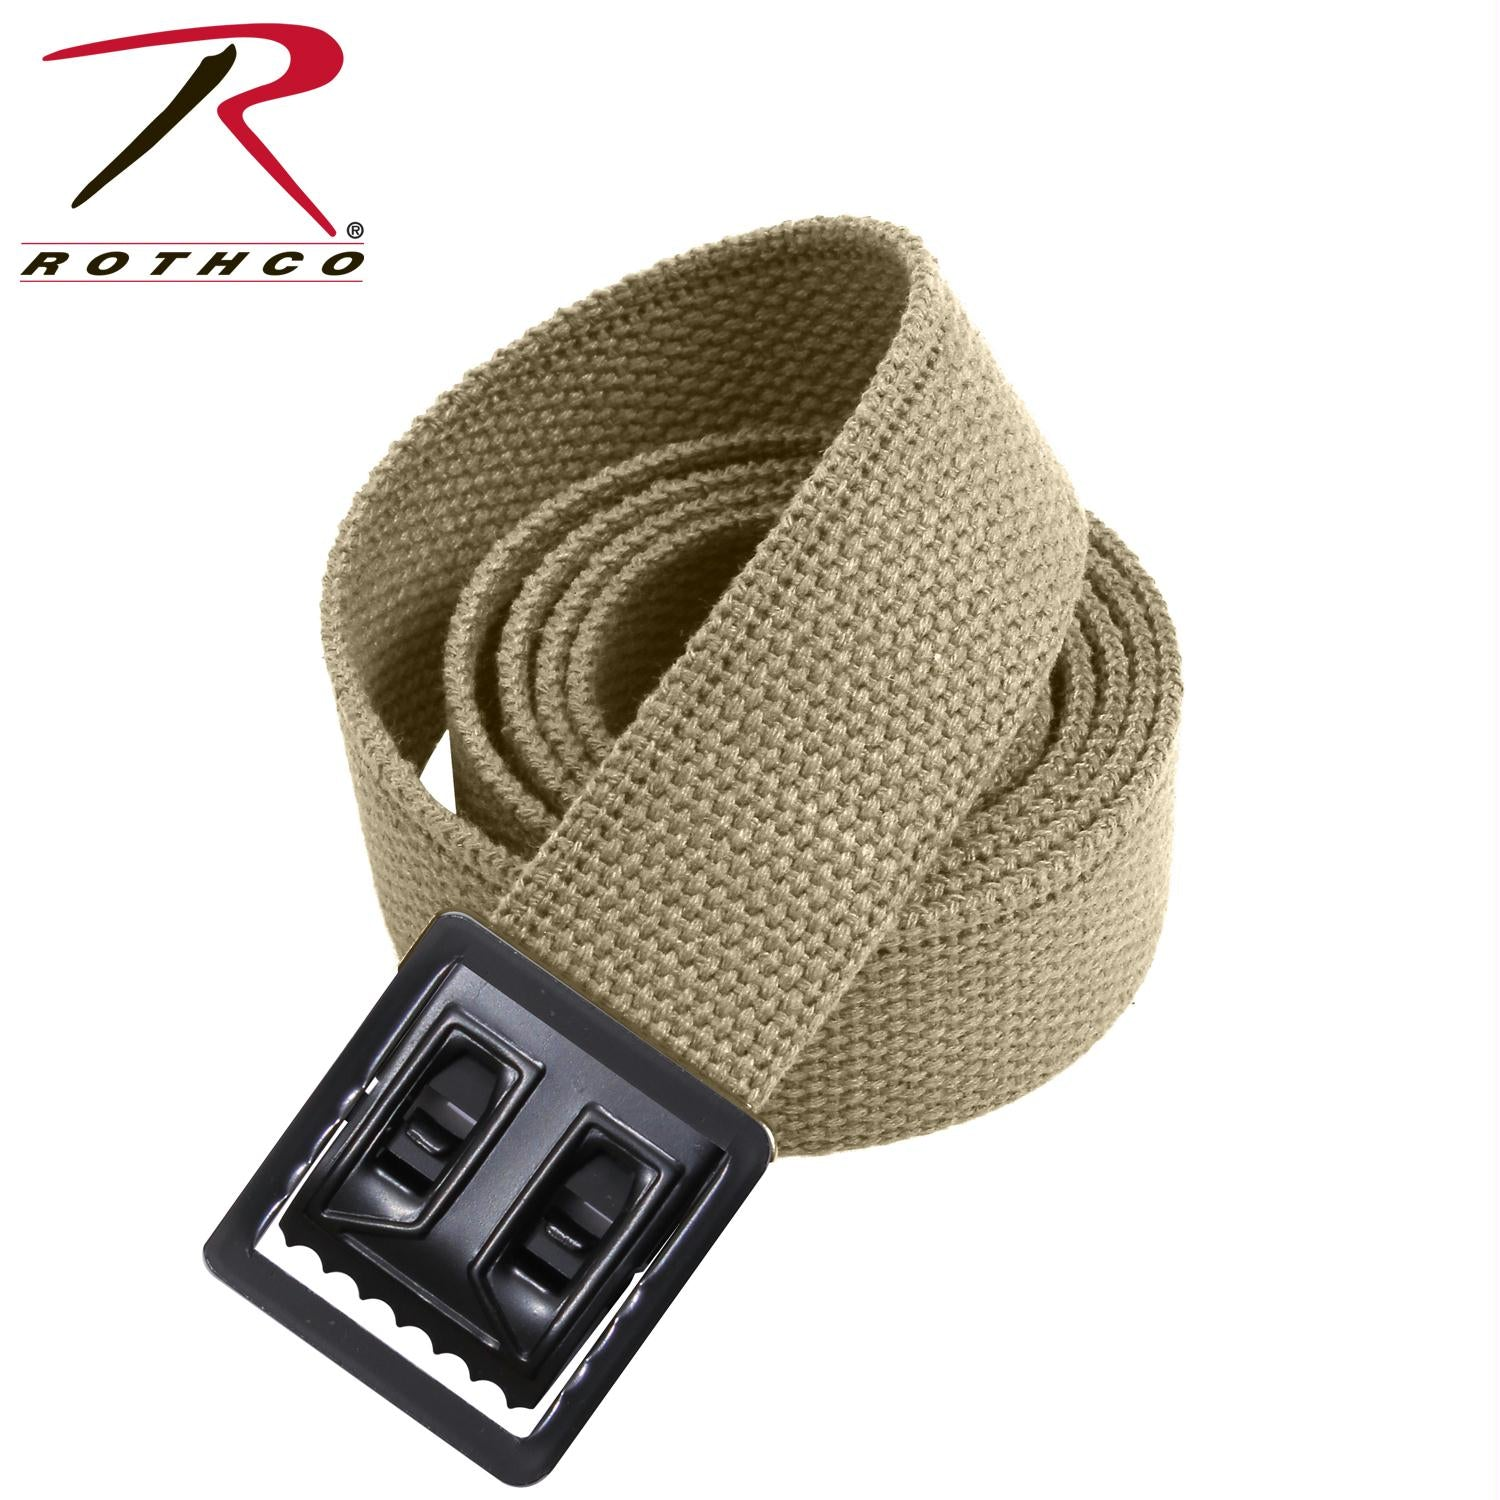 Rothco Military Web Belts w/ Open Face Buckle - Black / Khaki / 44 Inches